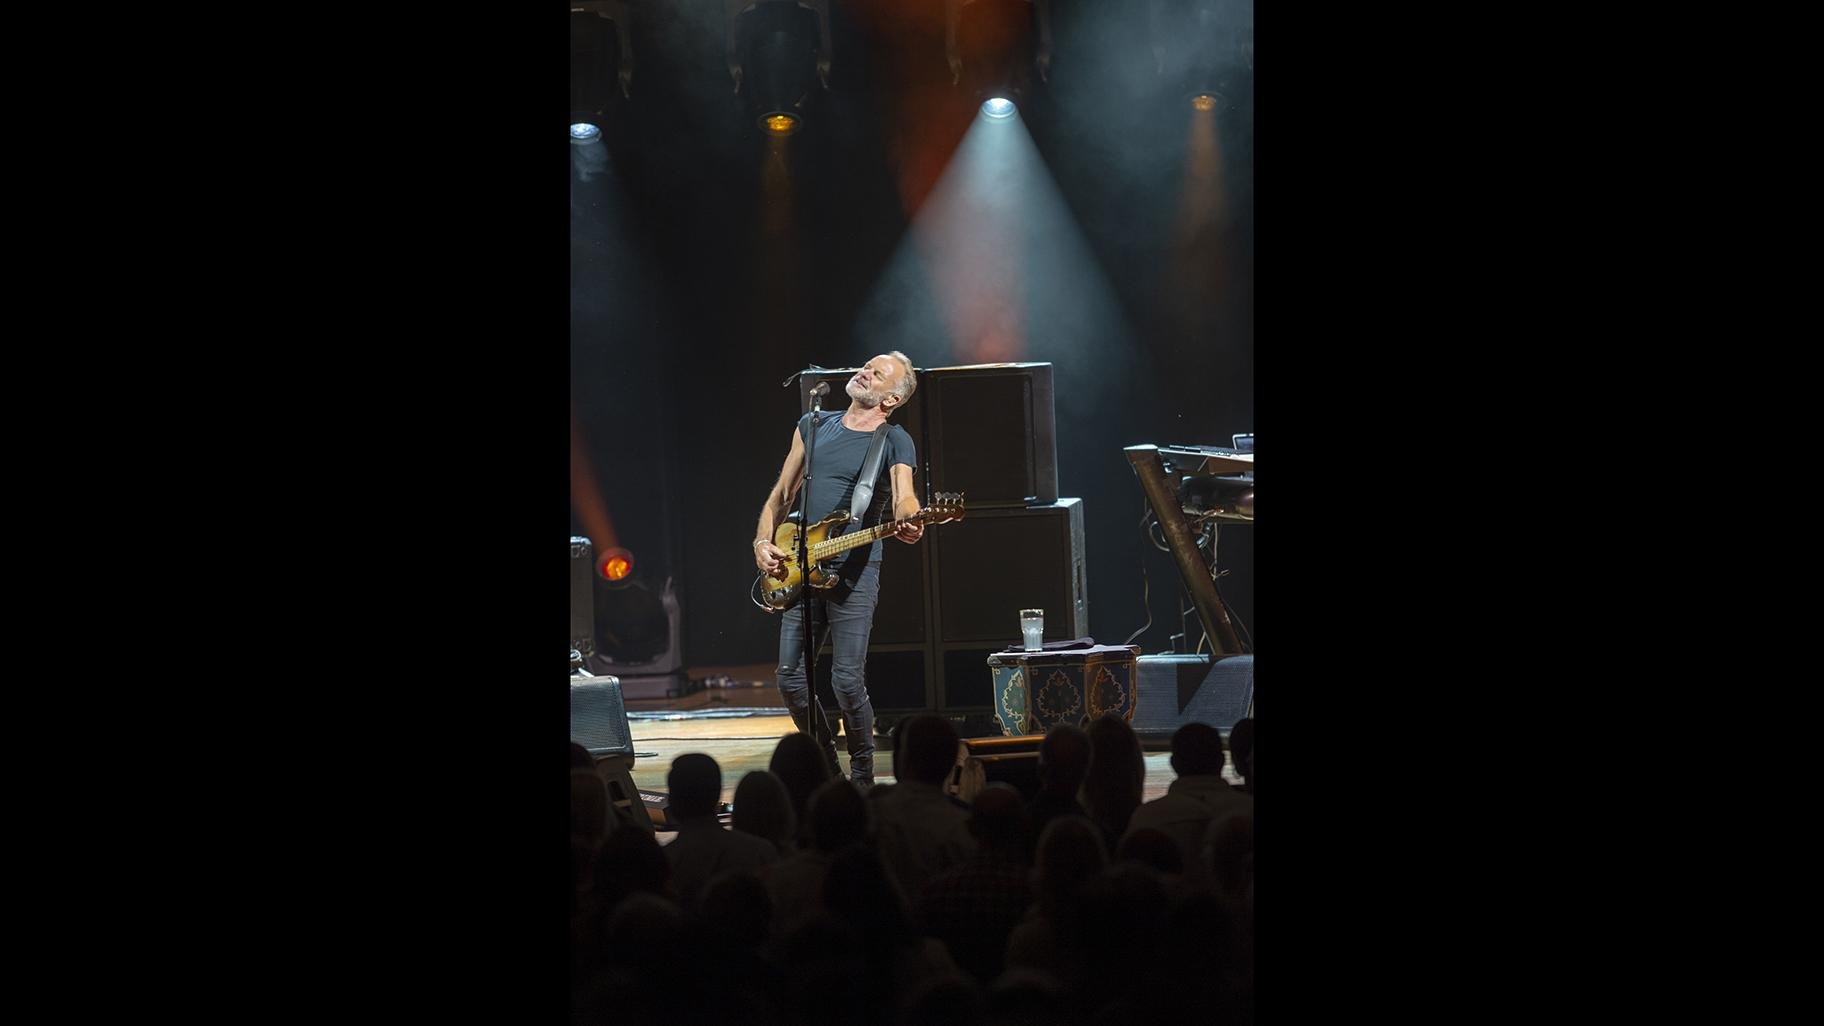 Sting performs at the Ravinia Festival Pavilion. (Ravinia Festival / Patrick Gipson)